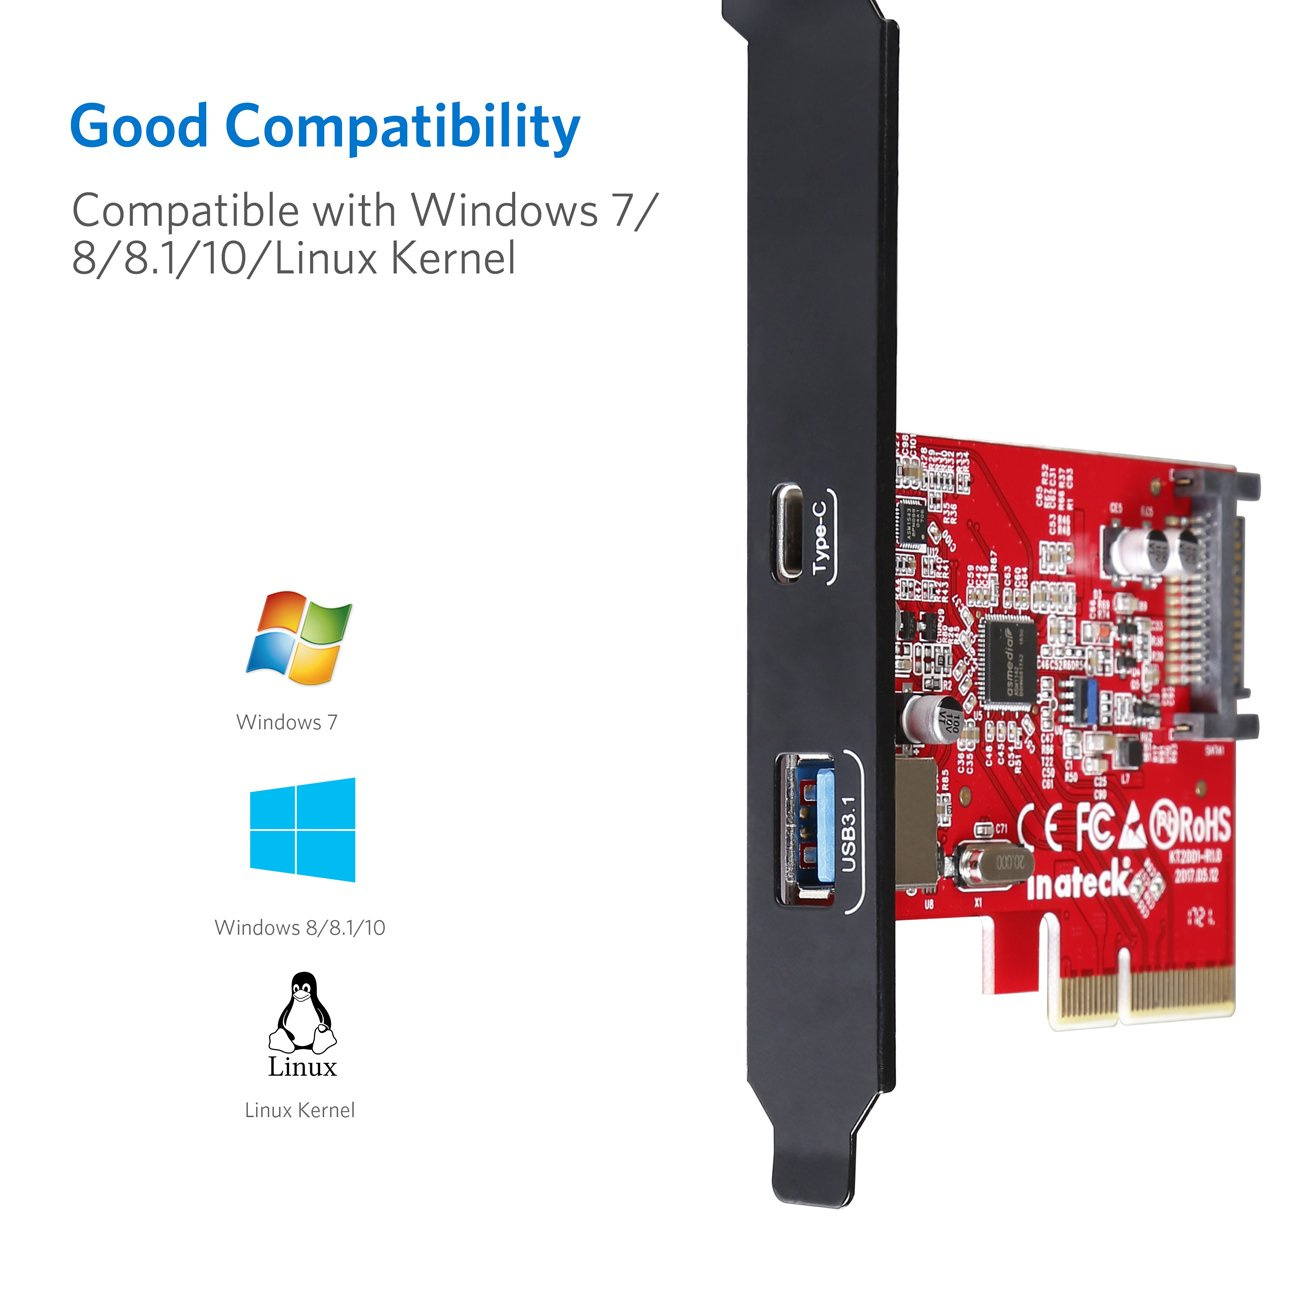 Inateck PCI-E to USB 3.1 PCI Express Card Including Type A and Type C Ports USB 3.1 Gen 2 SuperSpeed 10Gbps with 15-Pin SATA Power Connector and Asmedia Chip for Windows 7 /8/8.1/10/Linux Kernel by Inateck (Image #5)